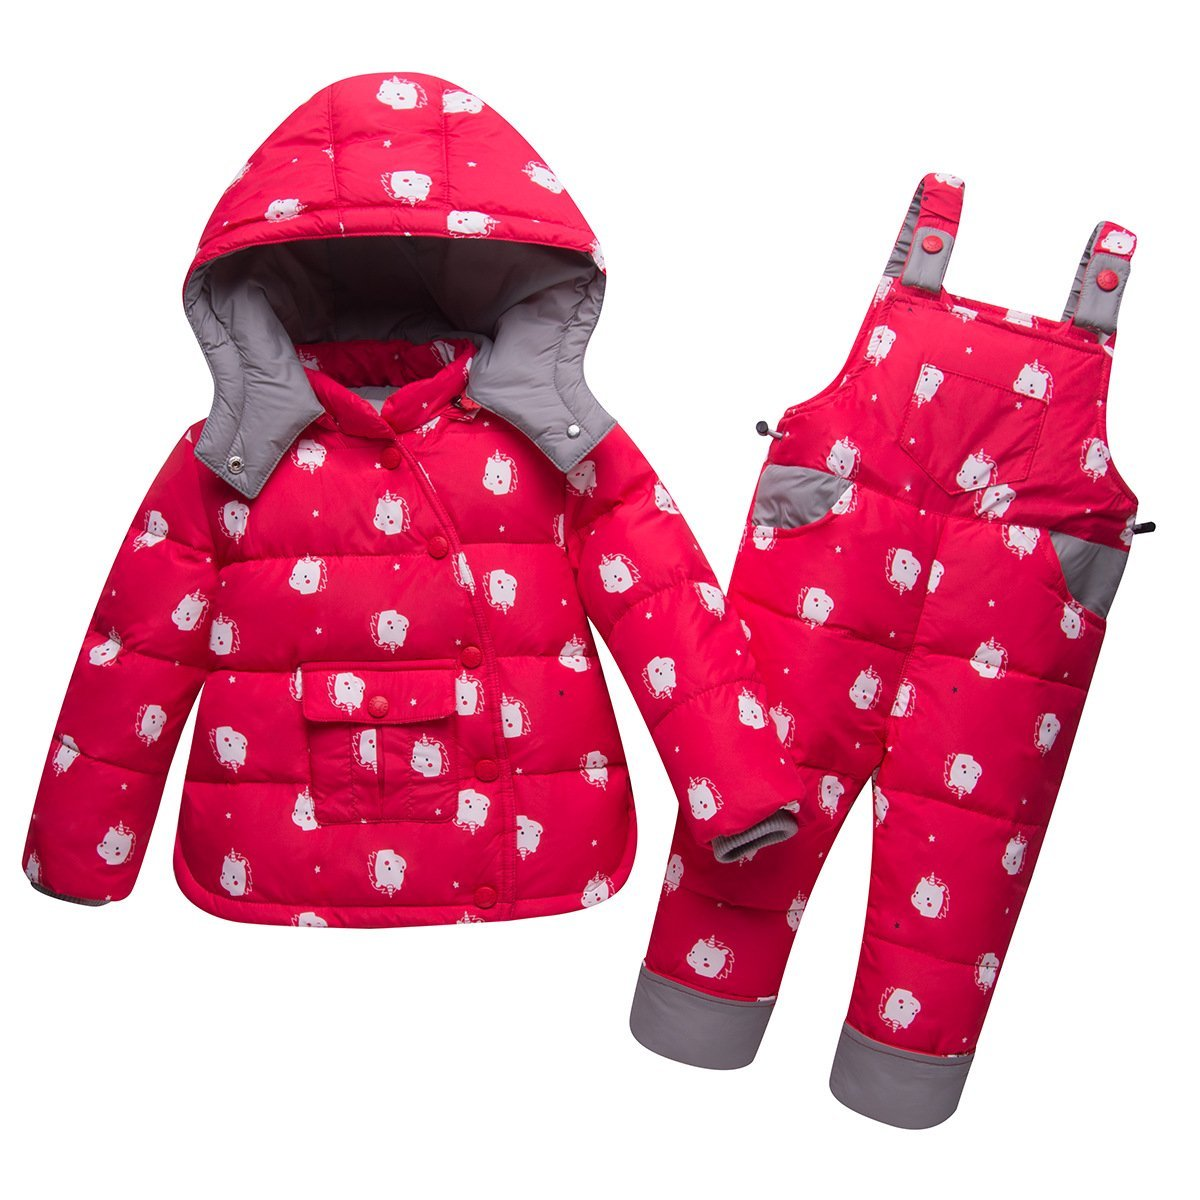 CADong Unisex Baby Toddler Winter Snowsuit, Two Piece Puffer Down Snowsuit Hooded Jacket with Snow Ski Bib Pants